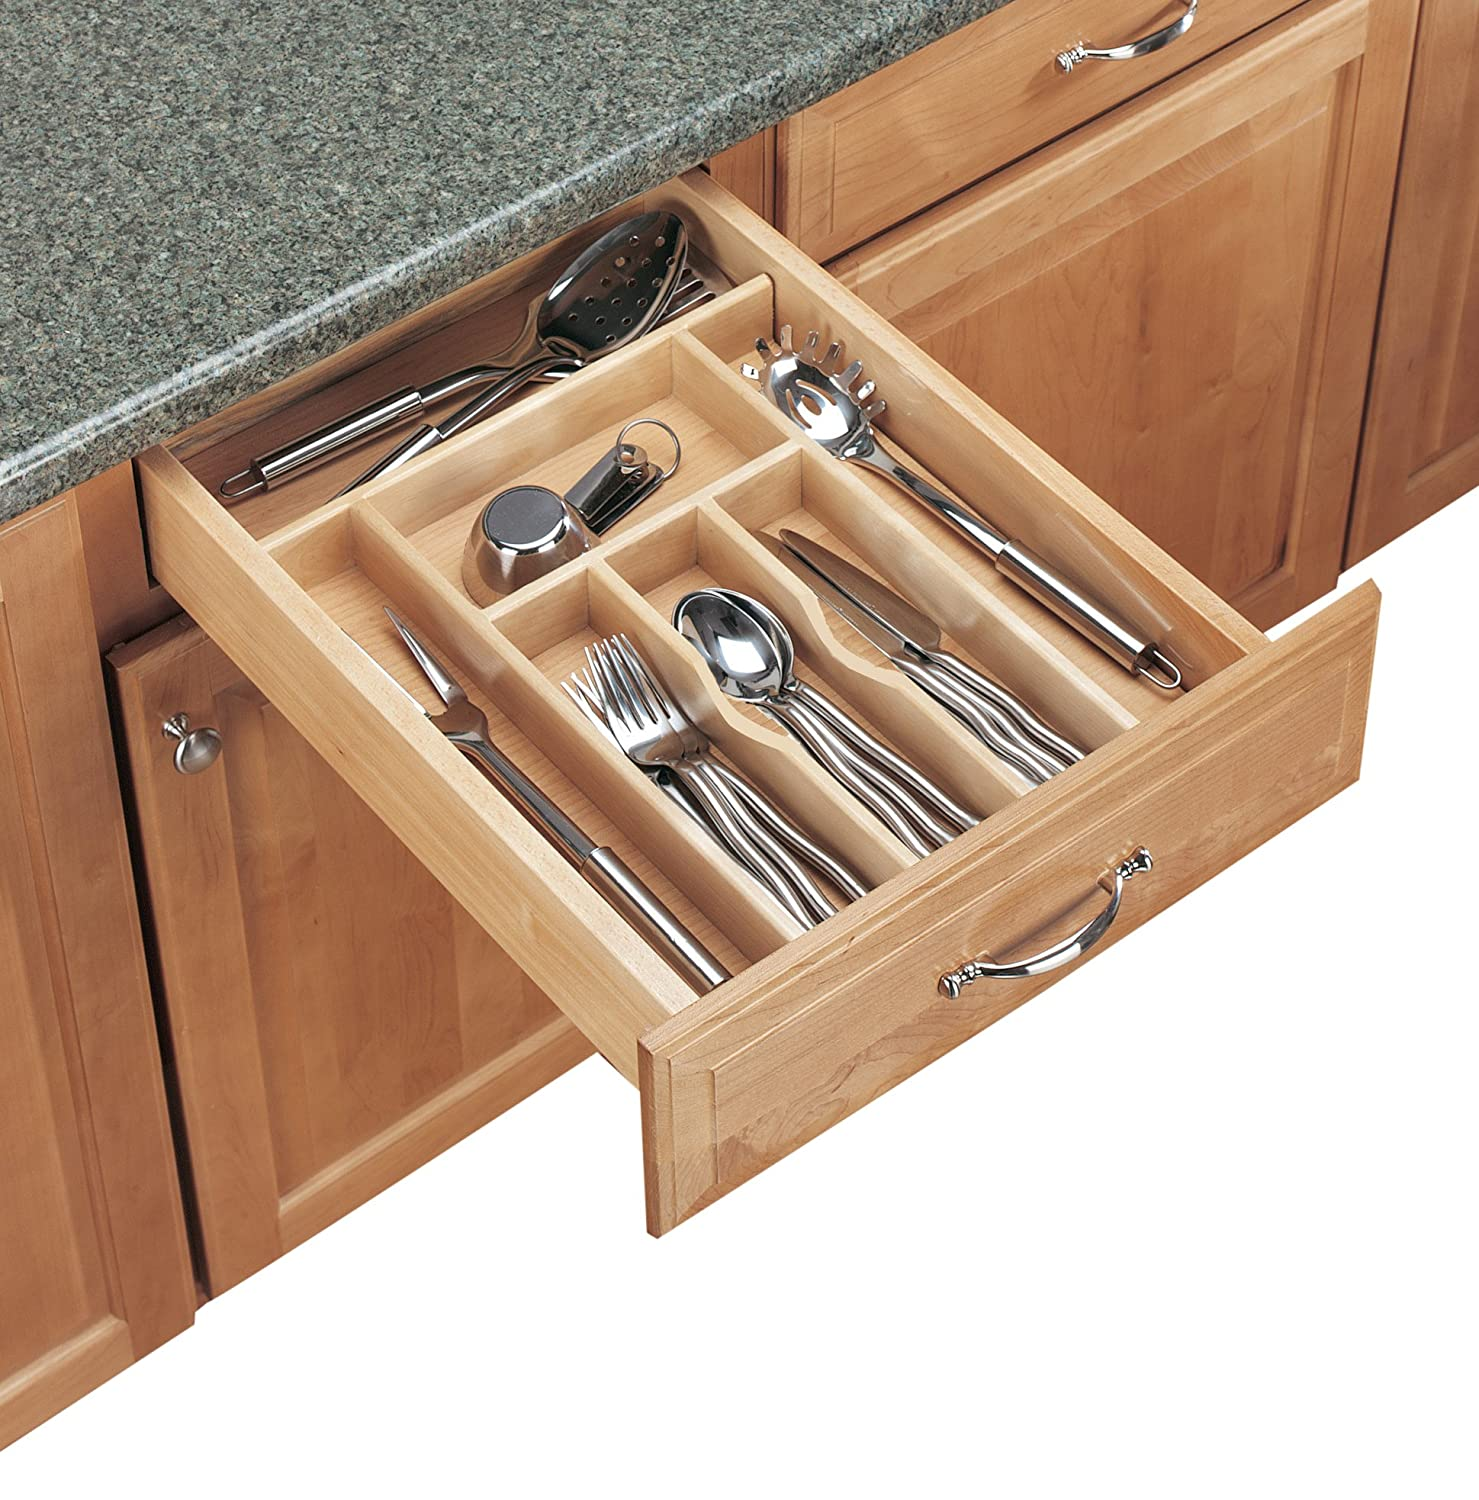 wooden organizers sliding knives bins examples full utensils trays showy upright inserts nc carousel cover size remodelaholic rack and drawers ideas drawer diy cabinetry with tray utensil schuler made wood usa for winston ikea organizer salem philippines kitchen flatware cabinet cabinets hacks in of